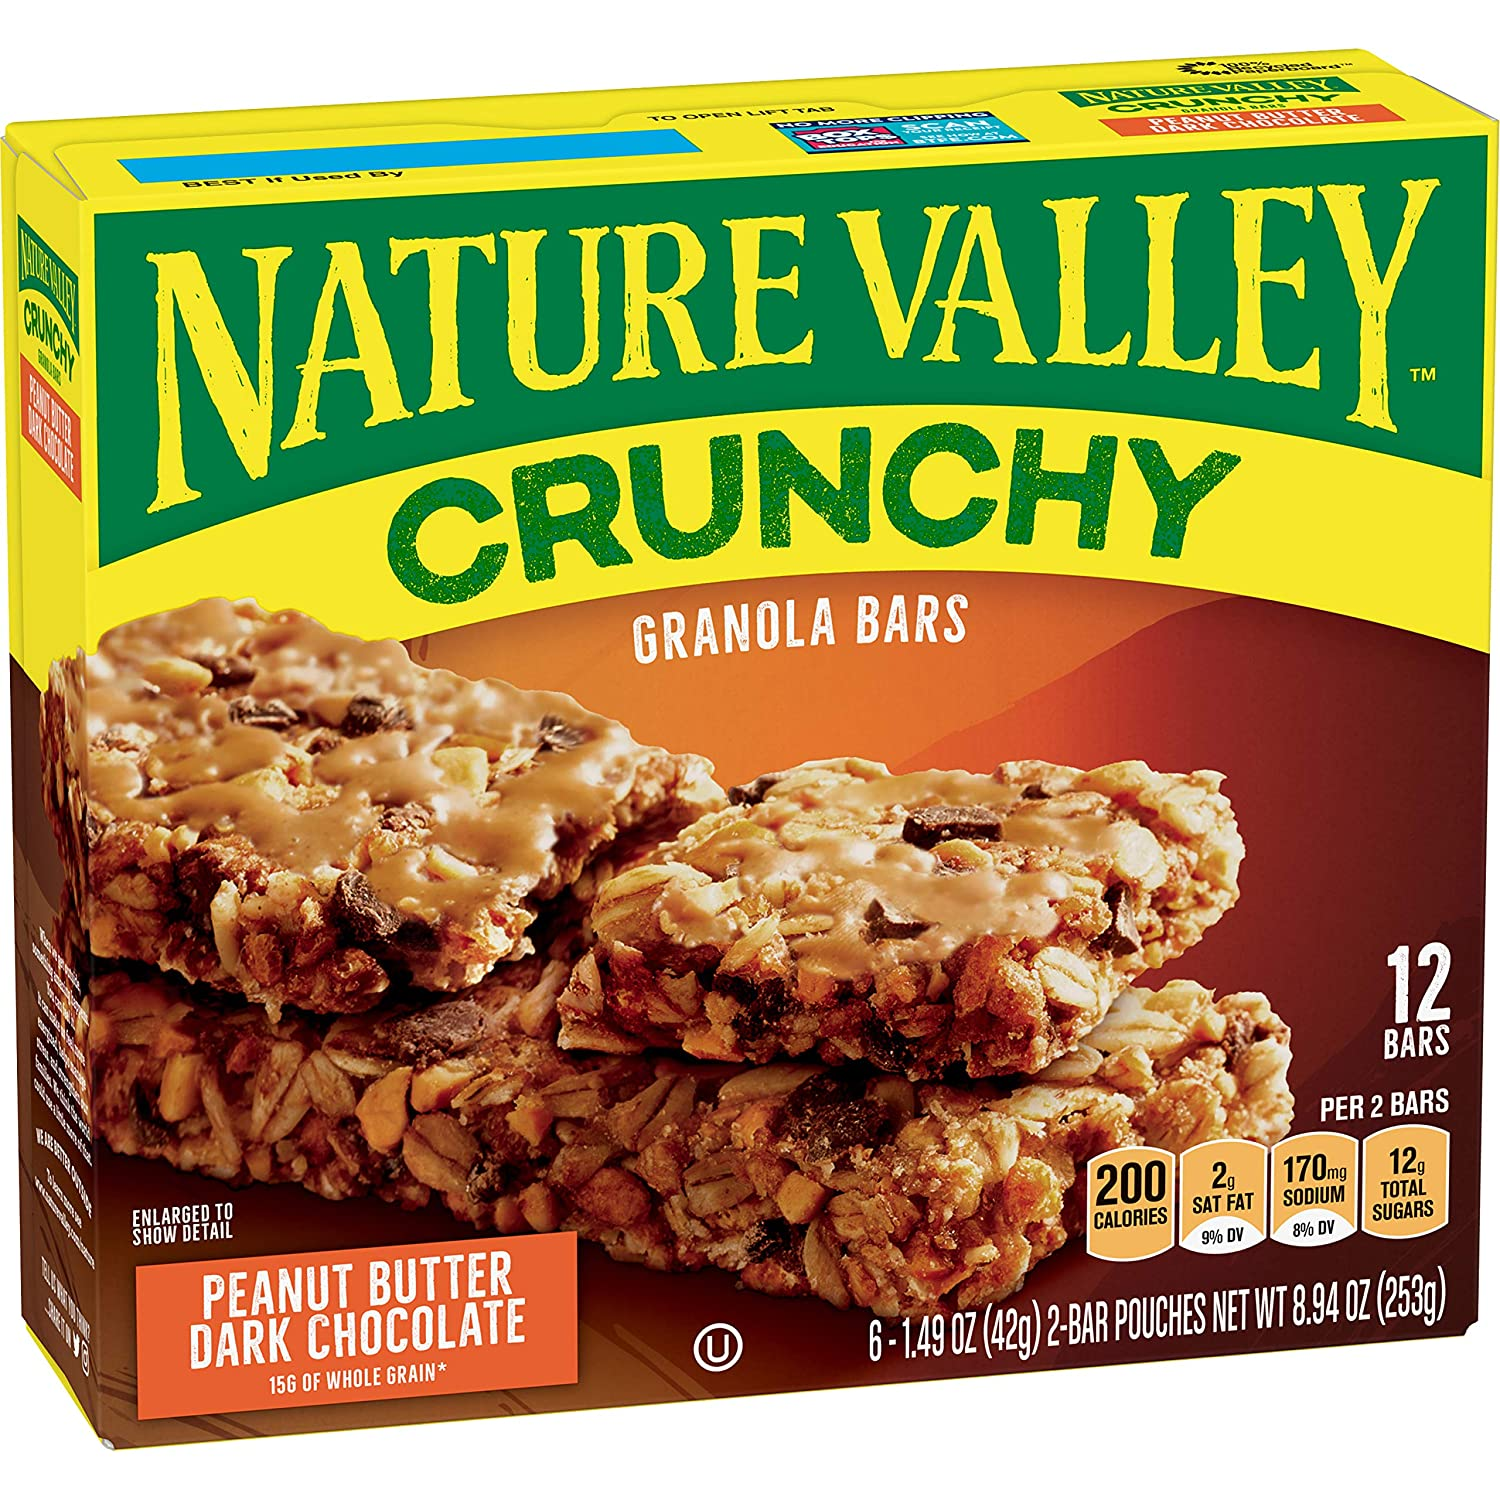 Nature Valley Peanut Butter Dark Chocolate Crunchy Granola Bars, 8.94 oz